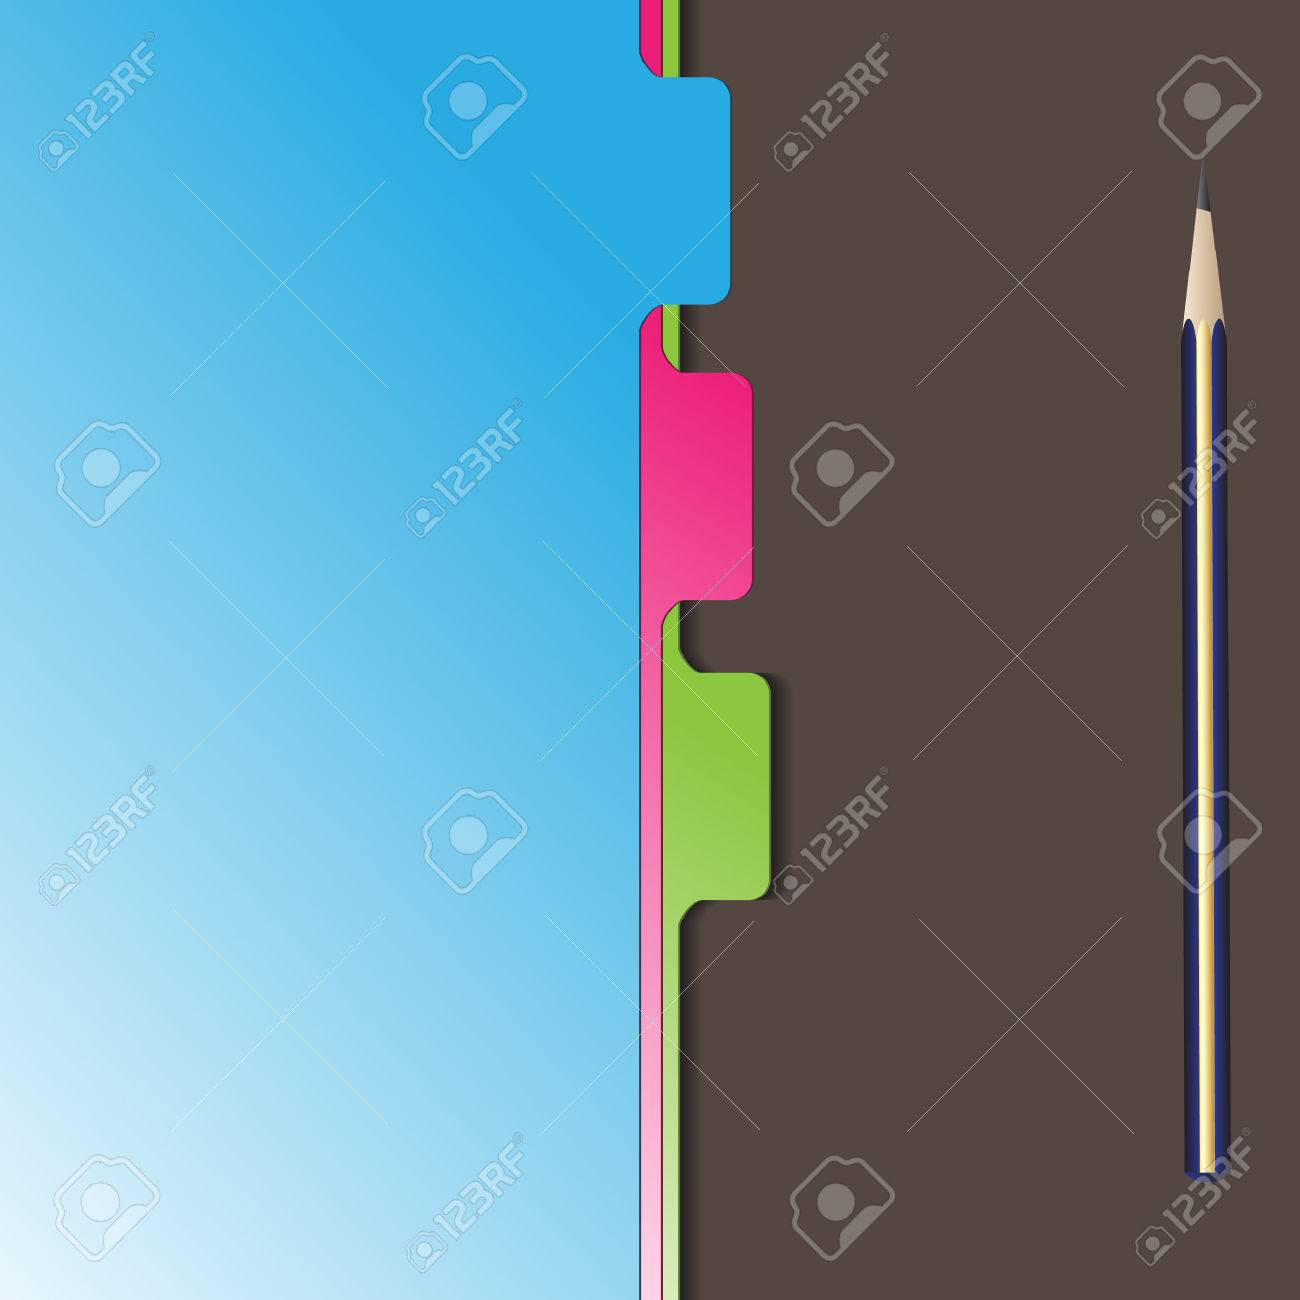 Vector - Document separator or divider with pencil stationery Stock Vector - 5592666